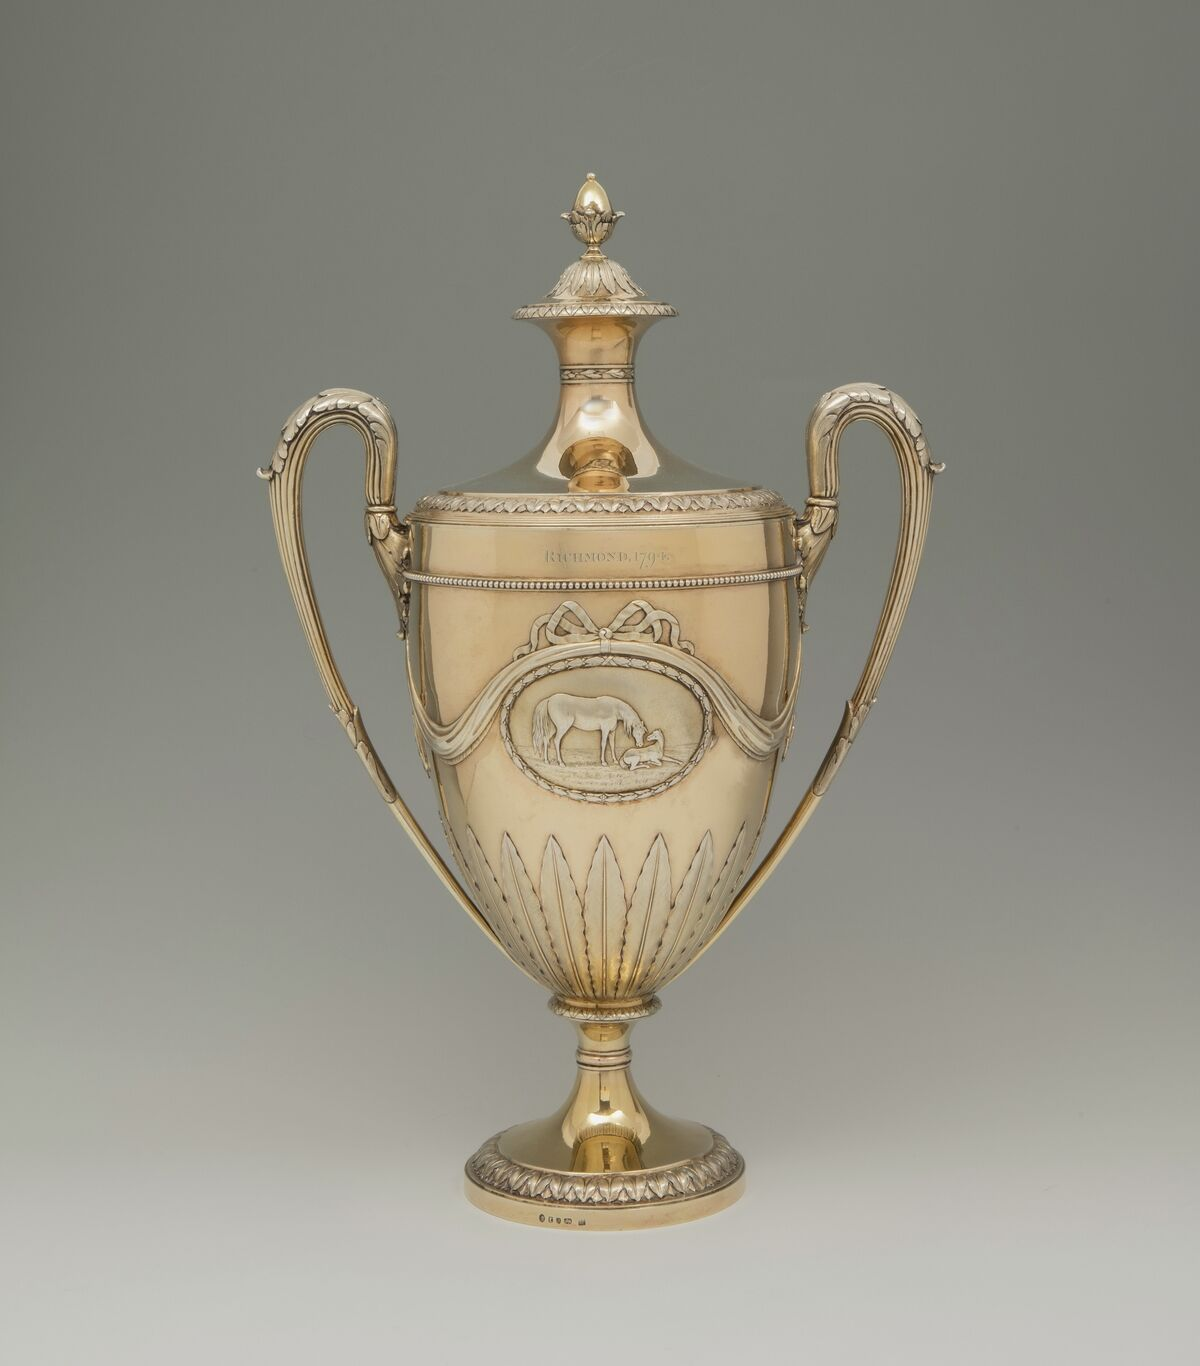 Robert and Thomas Makepeace, The Richmond Cup, 1794. Image courtesy of S.J. Shrubsole.